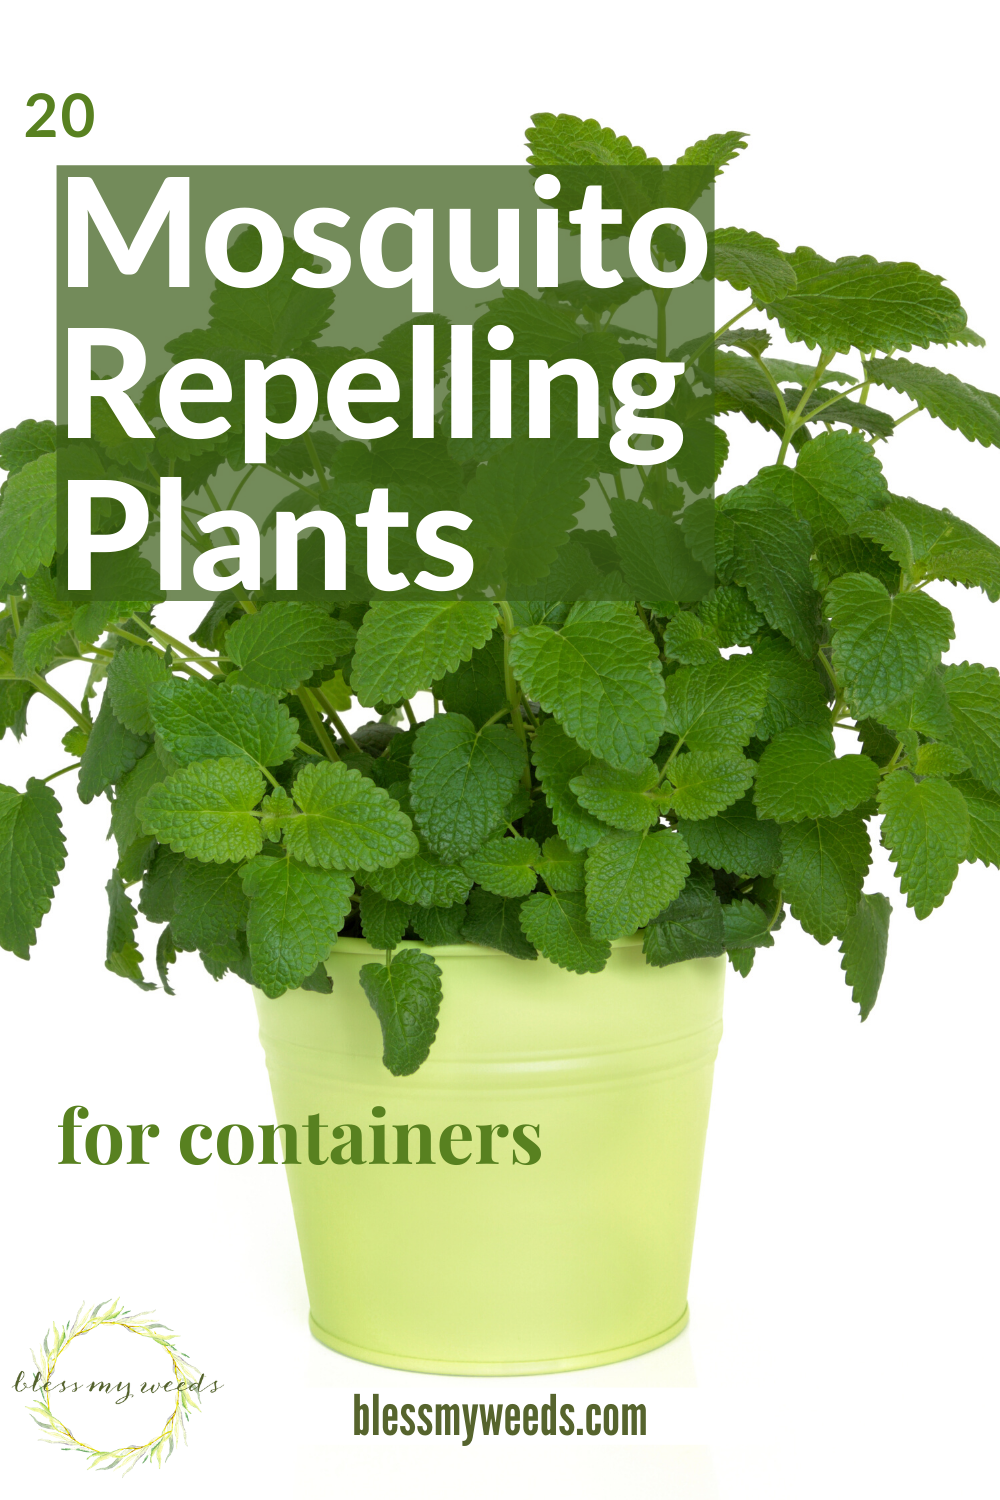 Mosquito Repelling Plants Container Safe For Dogs Patios Landscaping Outdoor Living Blessmyweeds Com